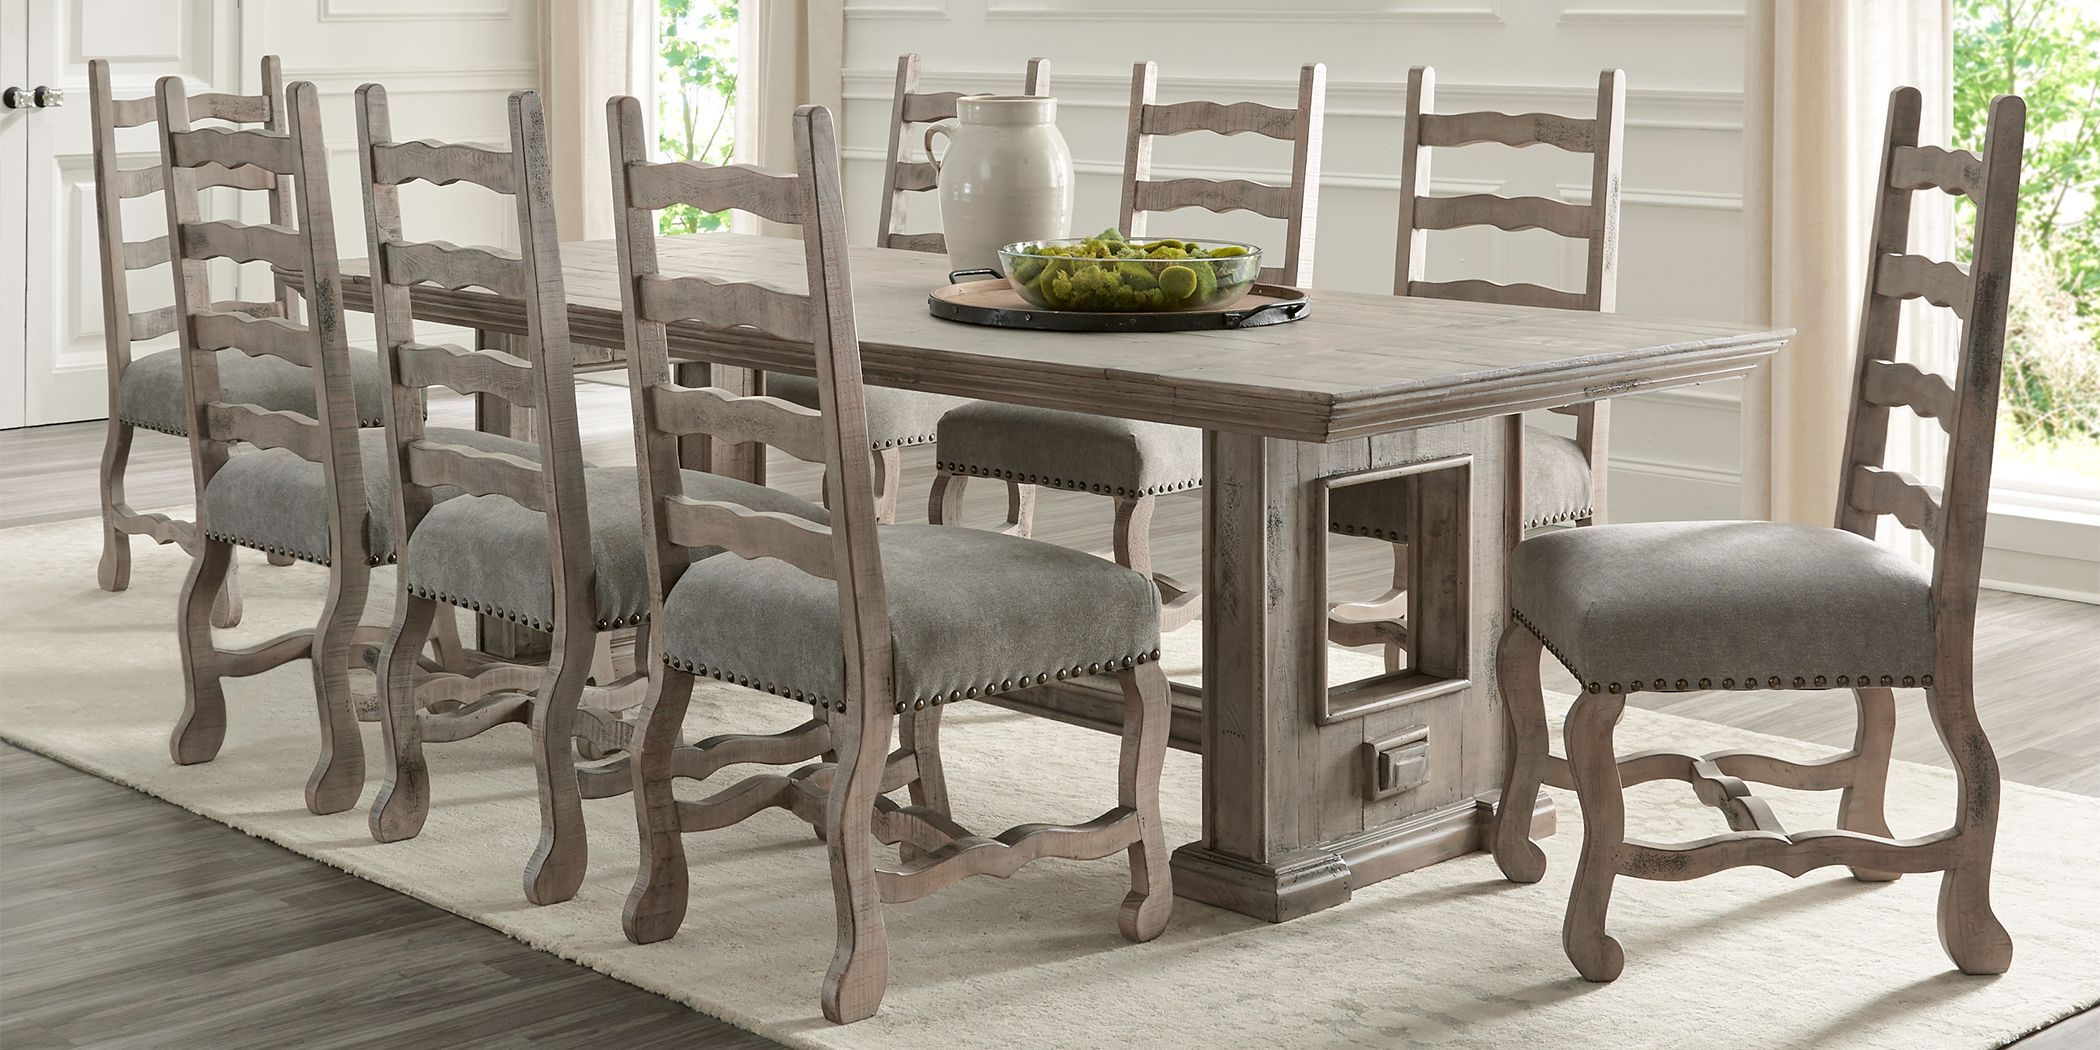 Cindy Crawford Home Pine Manor Brown 5 Pc 102 In Dining Room Brown Dining Table Dinning Room Tables Dining Room Sets